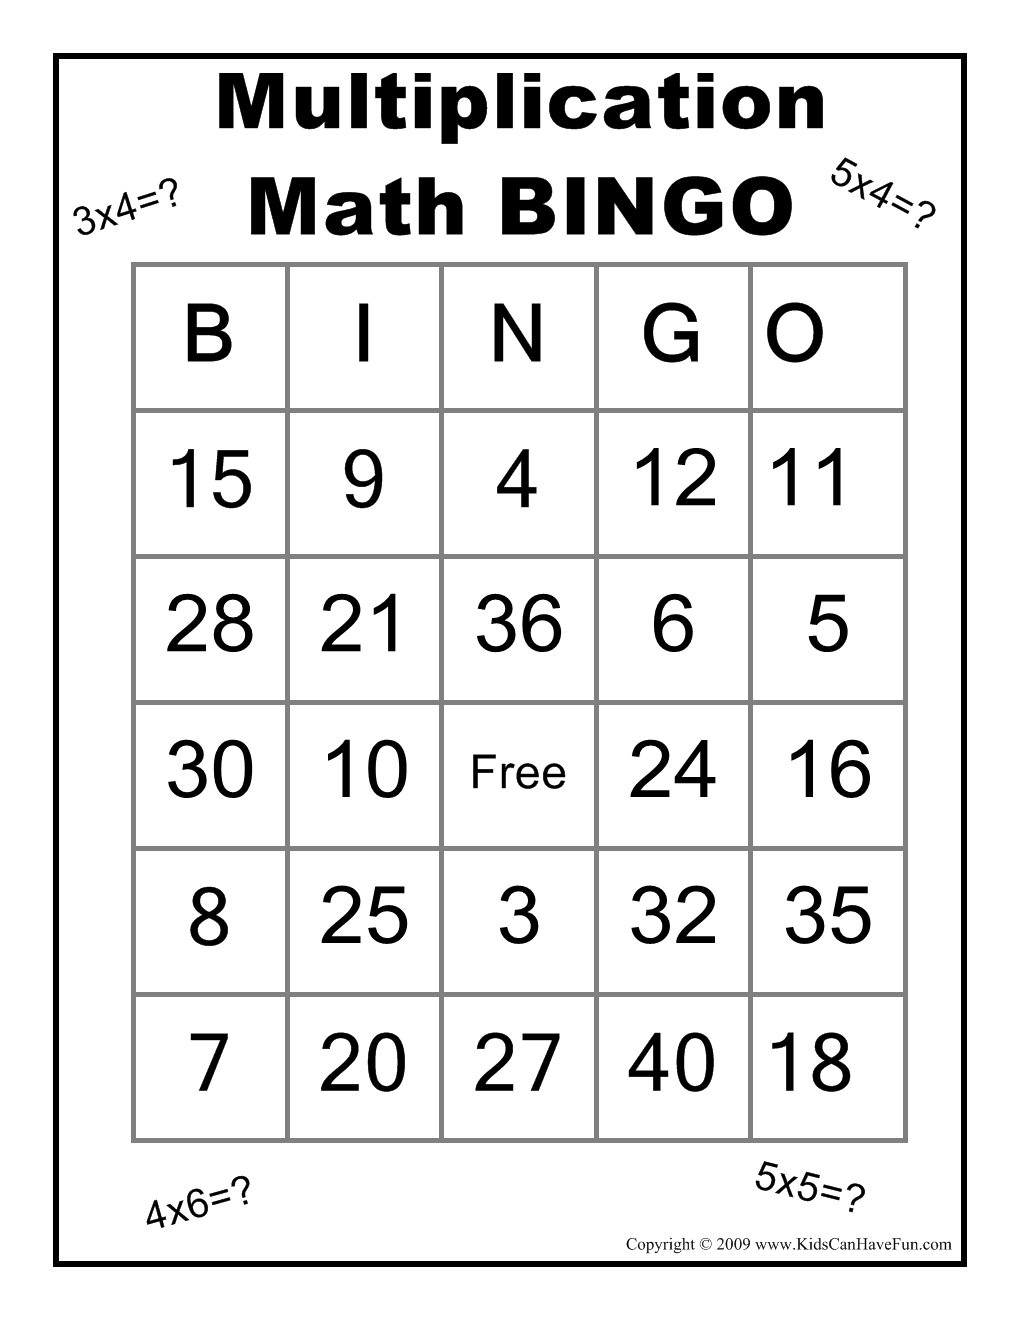 Uncategorized Math Worksheet Games multiplication math bingo game httpwww kidscanhavefun com fun educational games with alphabet uppercase and lowercase number games